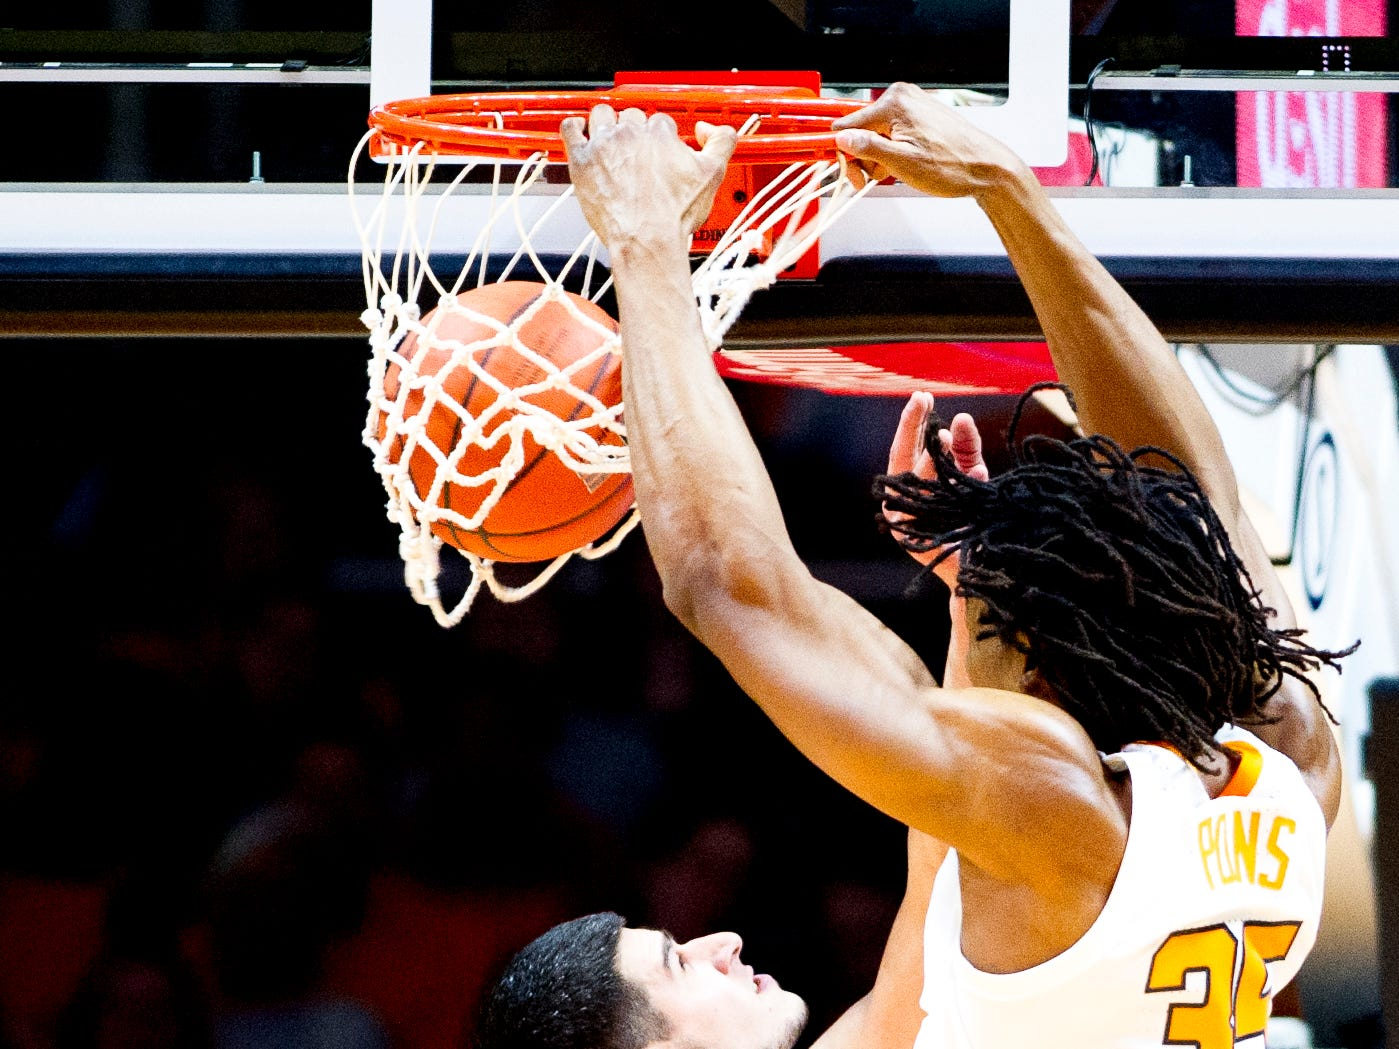 Tennessee guard/forward Yves Pons (35) dunks past Samford forward Stefan Lakic (15) during a game between Tennessee and Samford at Thompson-Boling Arena in Knoxville, Tennessee on Wednesday, December 19, 2018.